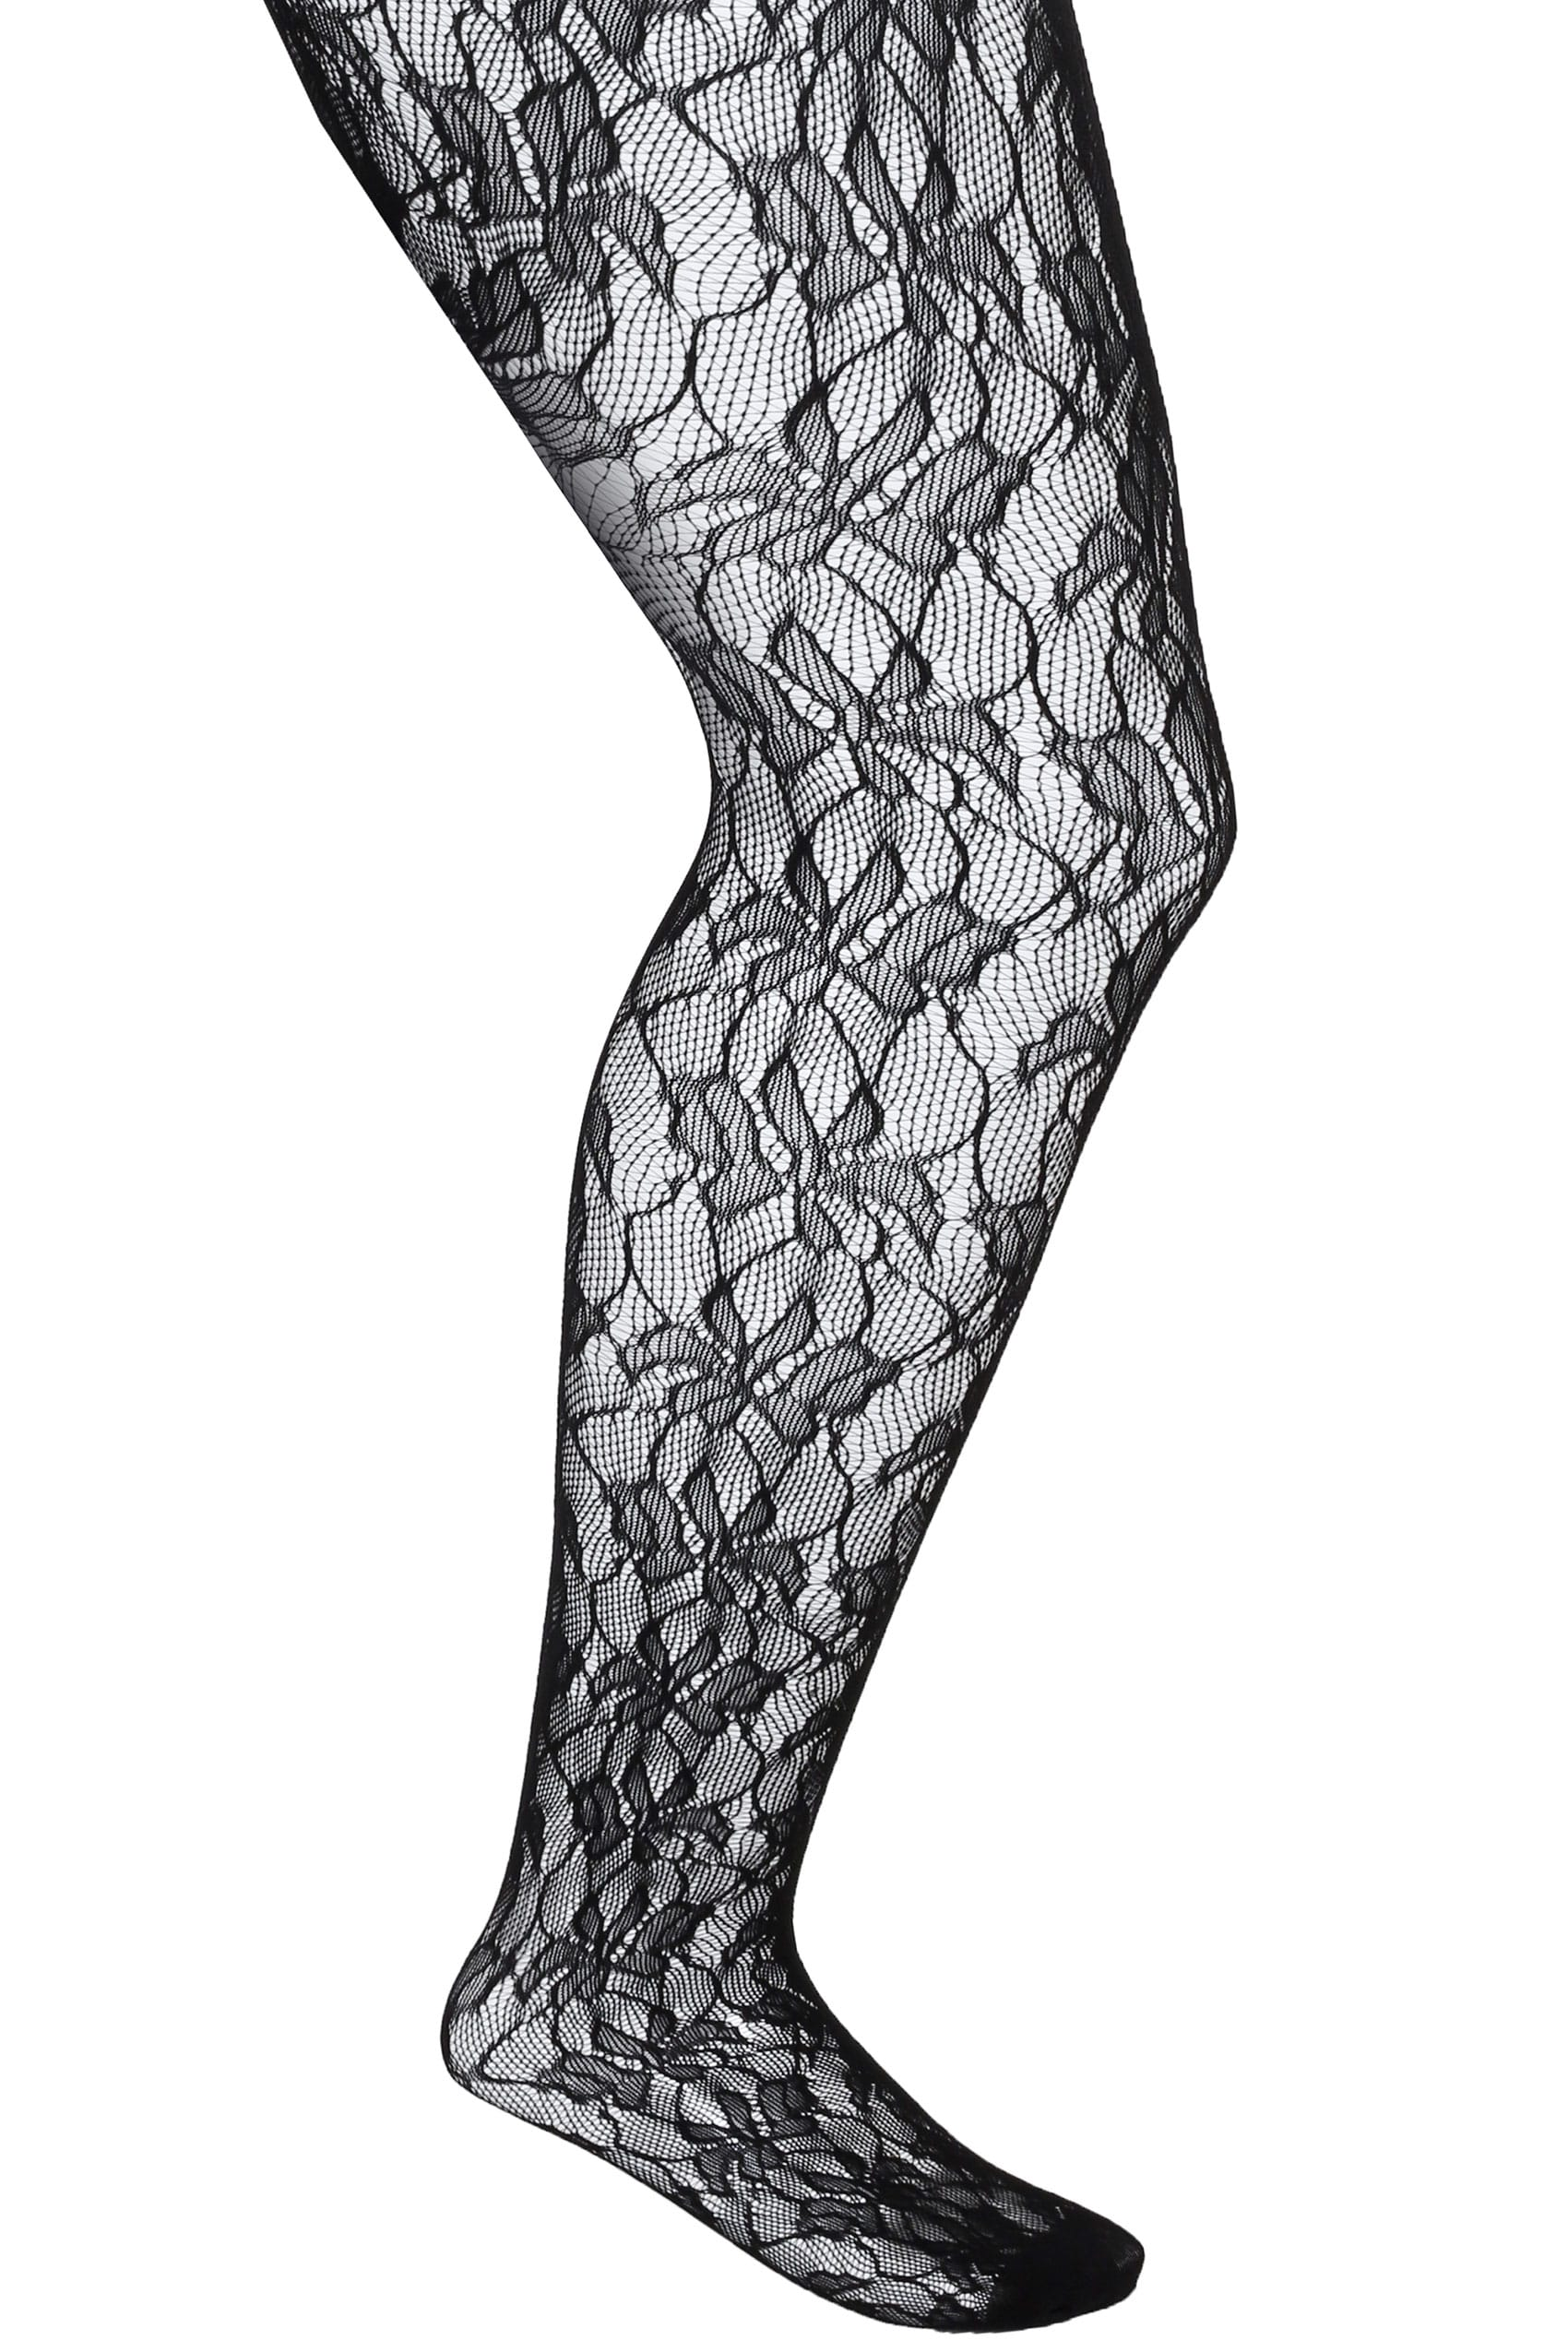 Black Leaf Patterned Lace Tights, Plus size 16 to 36